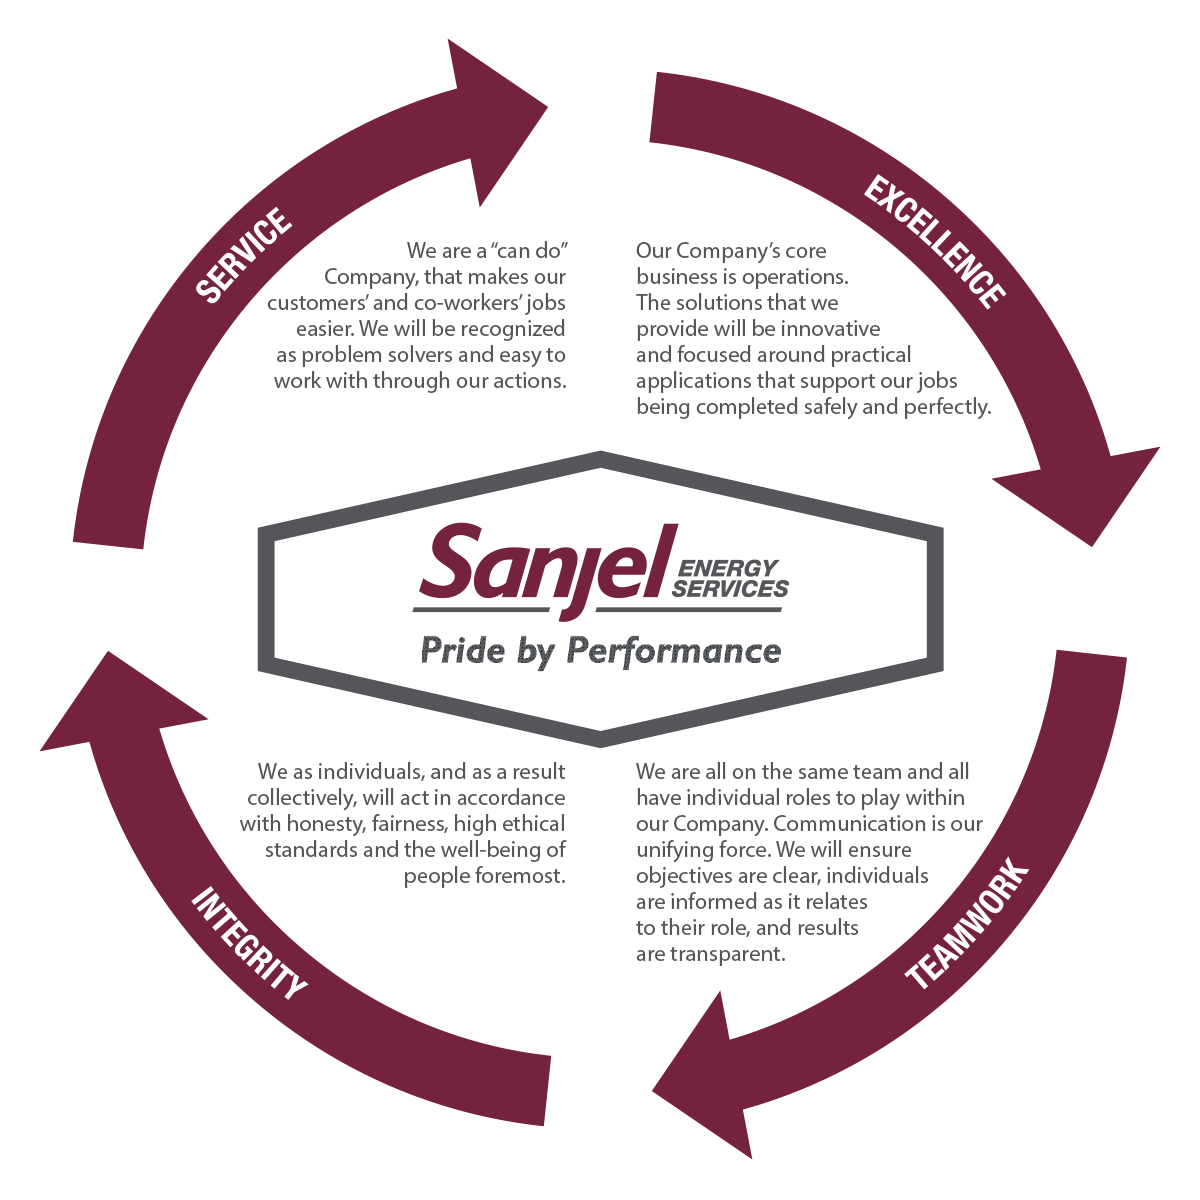 Sanjel Energy's culture of Service, Excellence, Teamwork and Integrity drives our success.